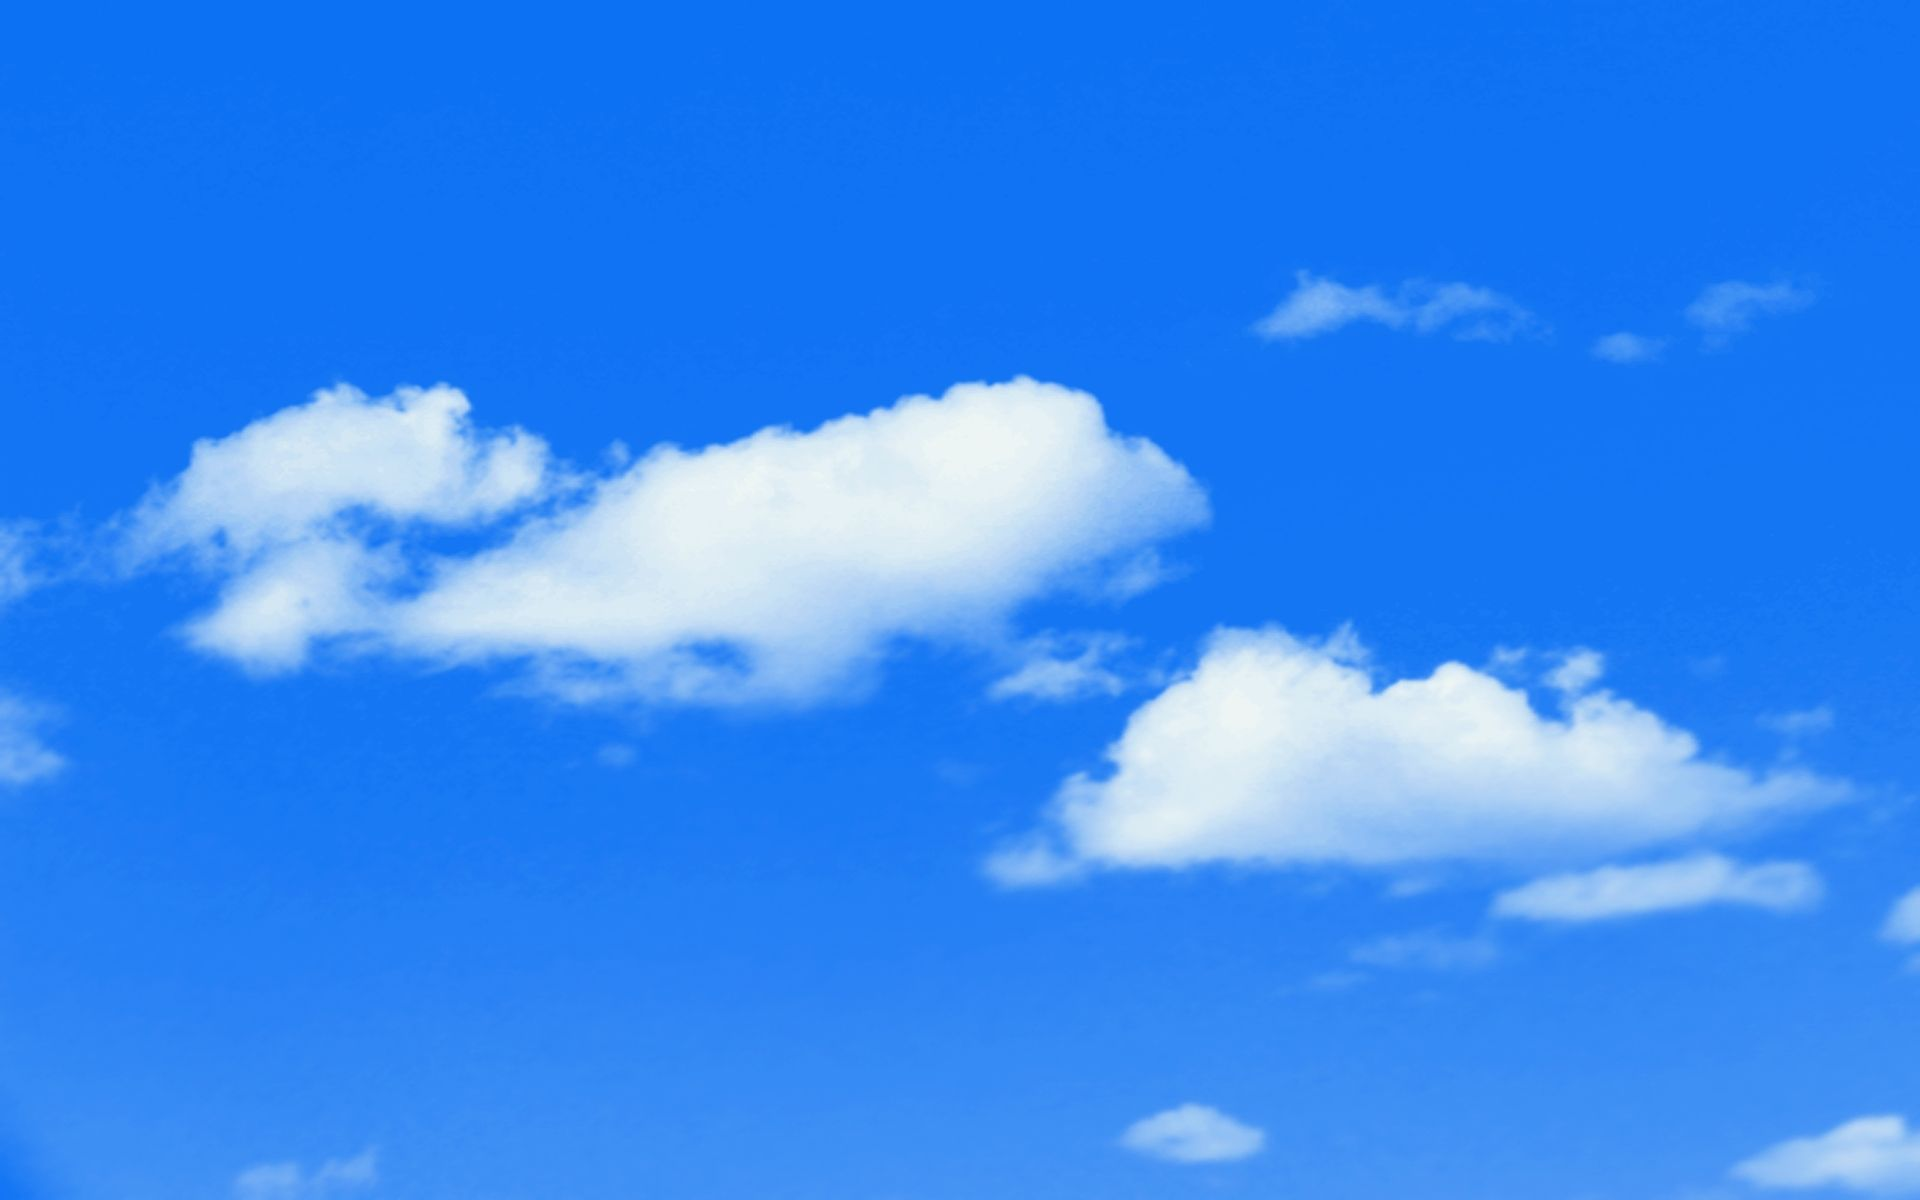 Pin By Sarah Im On Sky Pinterest Sky Blue And Blue Sky Wallpaper